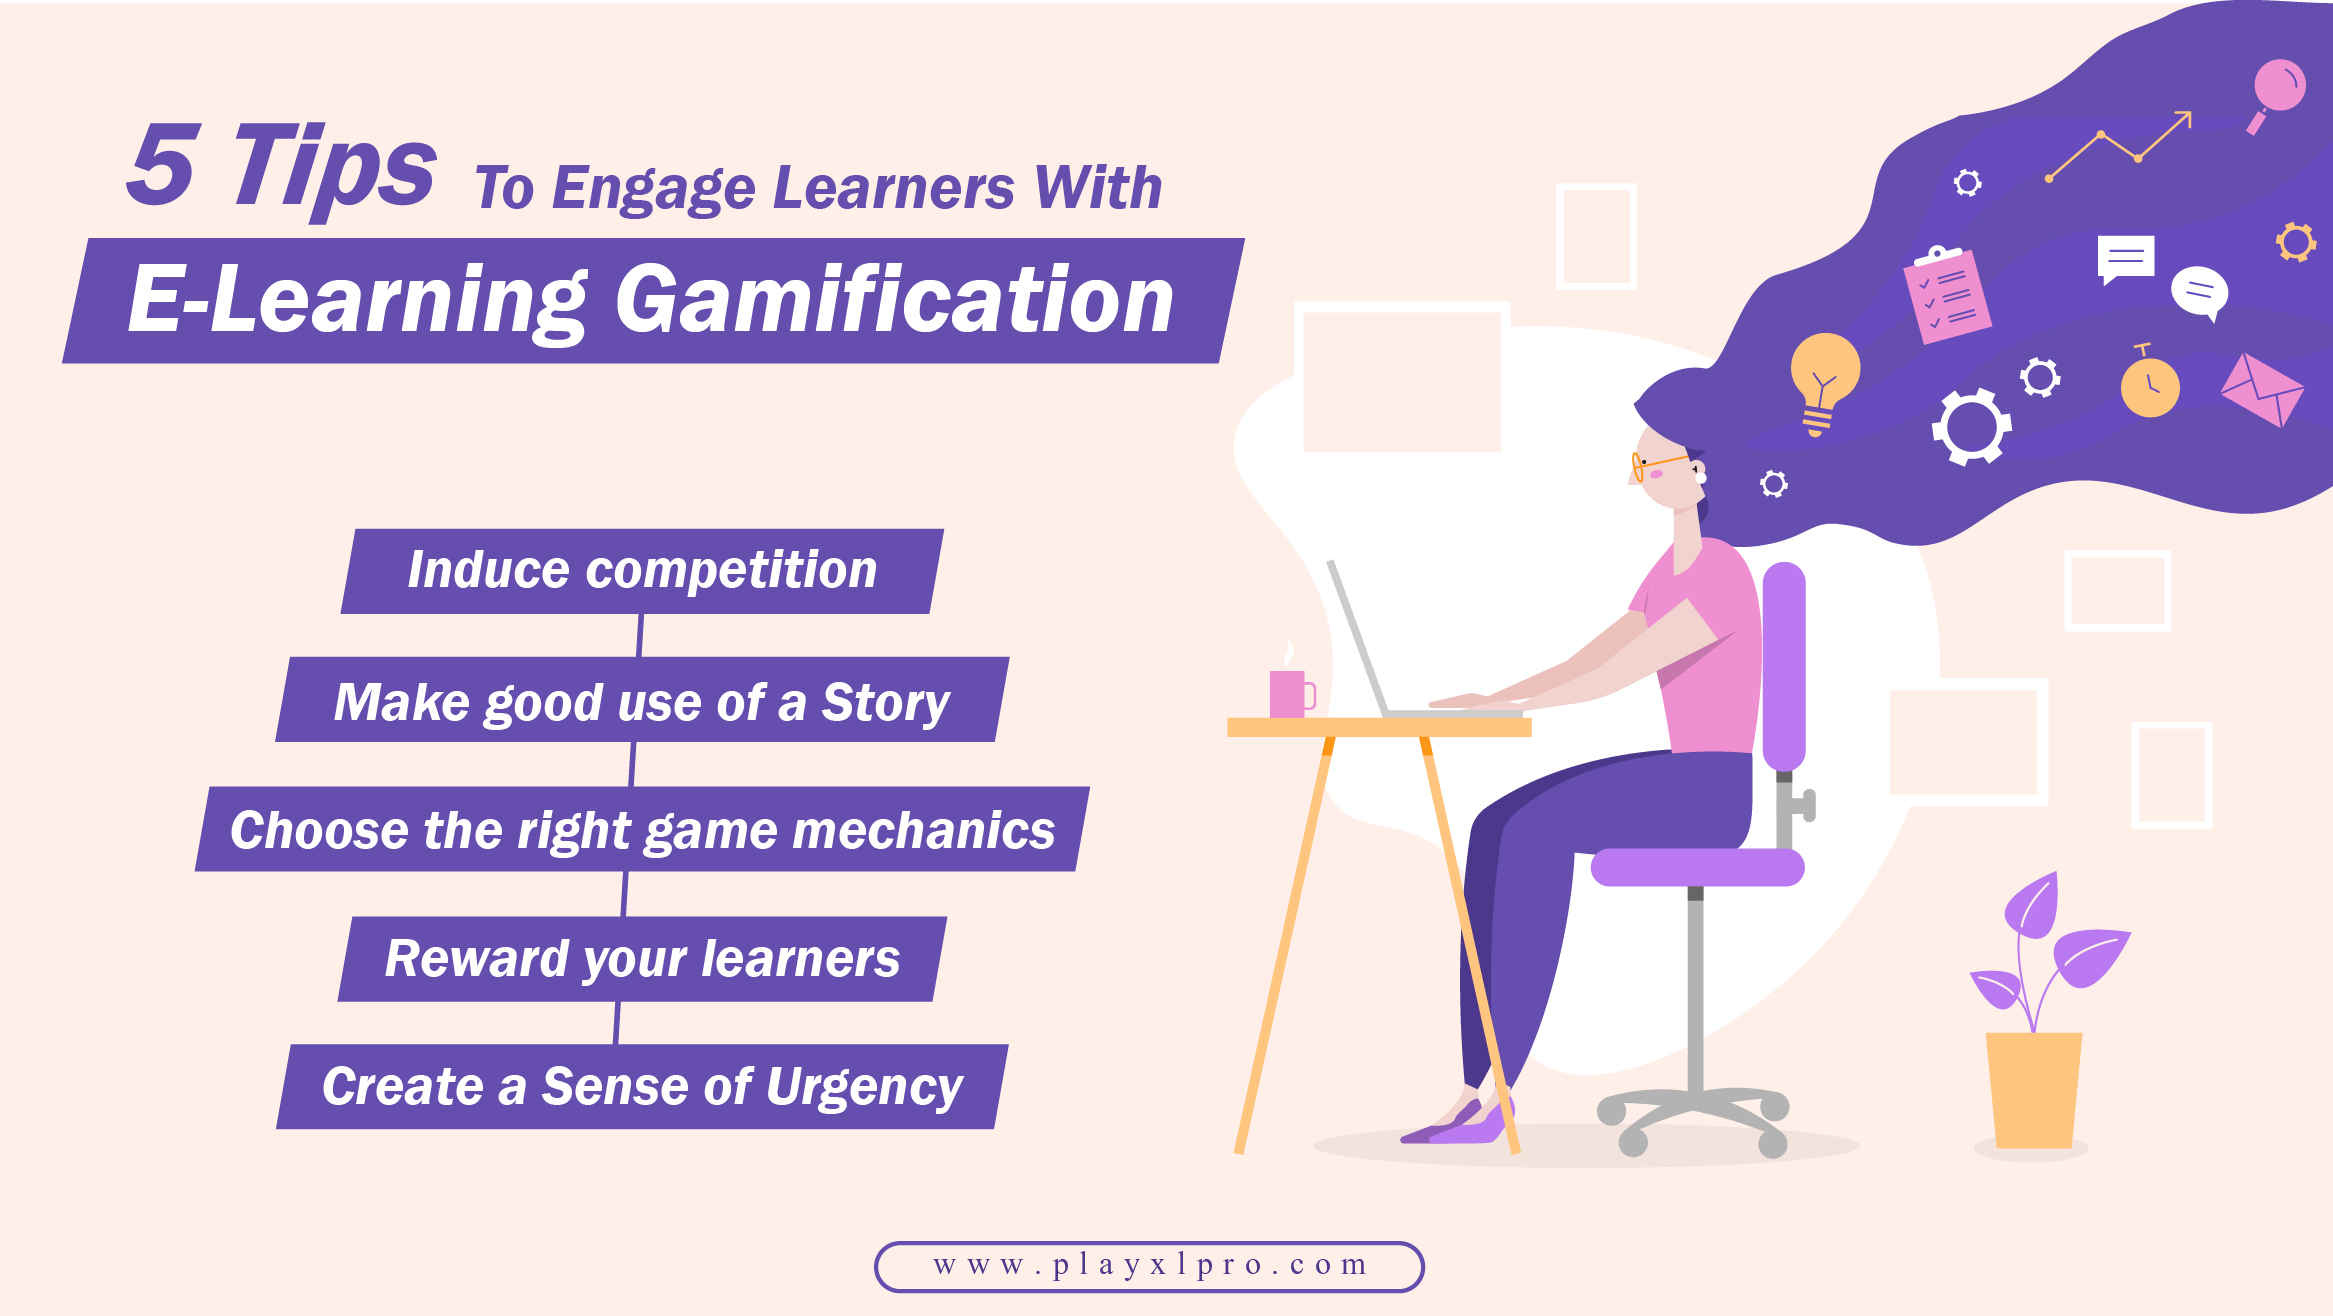 e-learning gamification tips